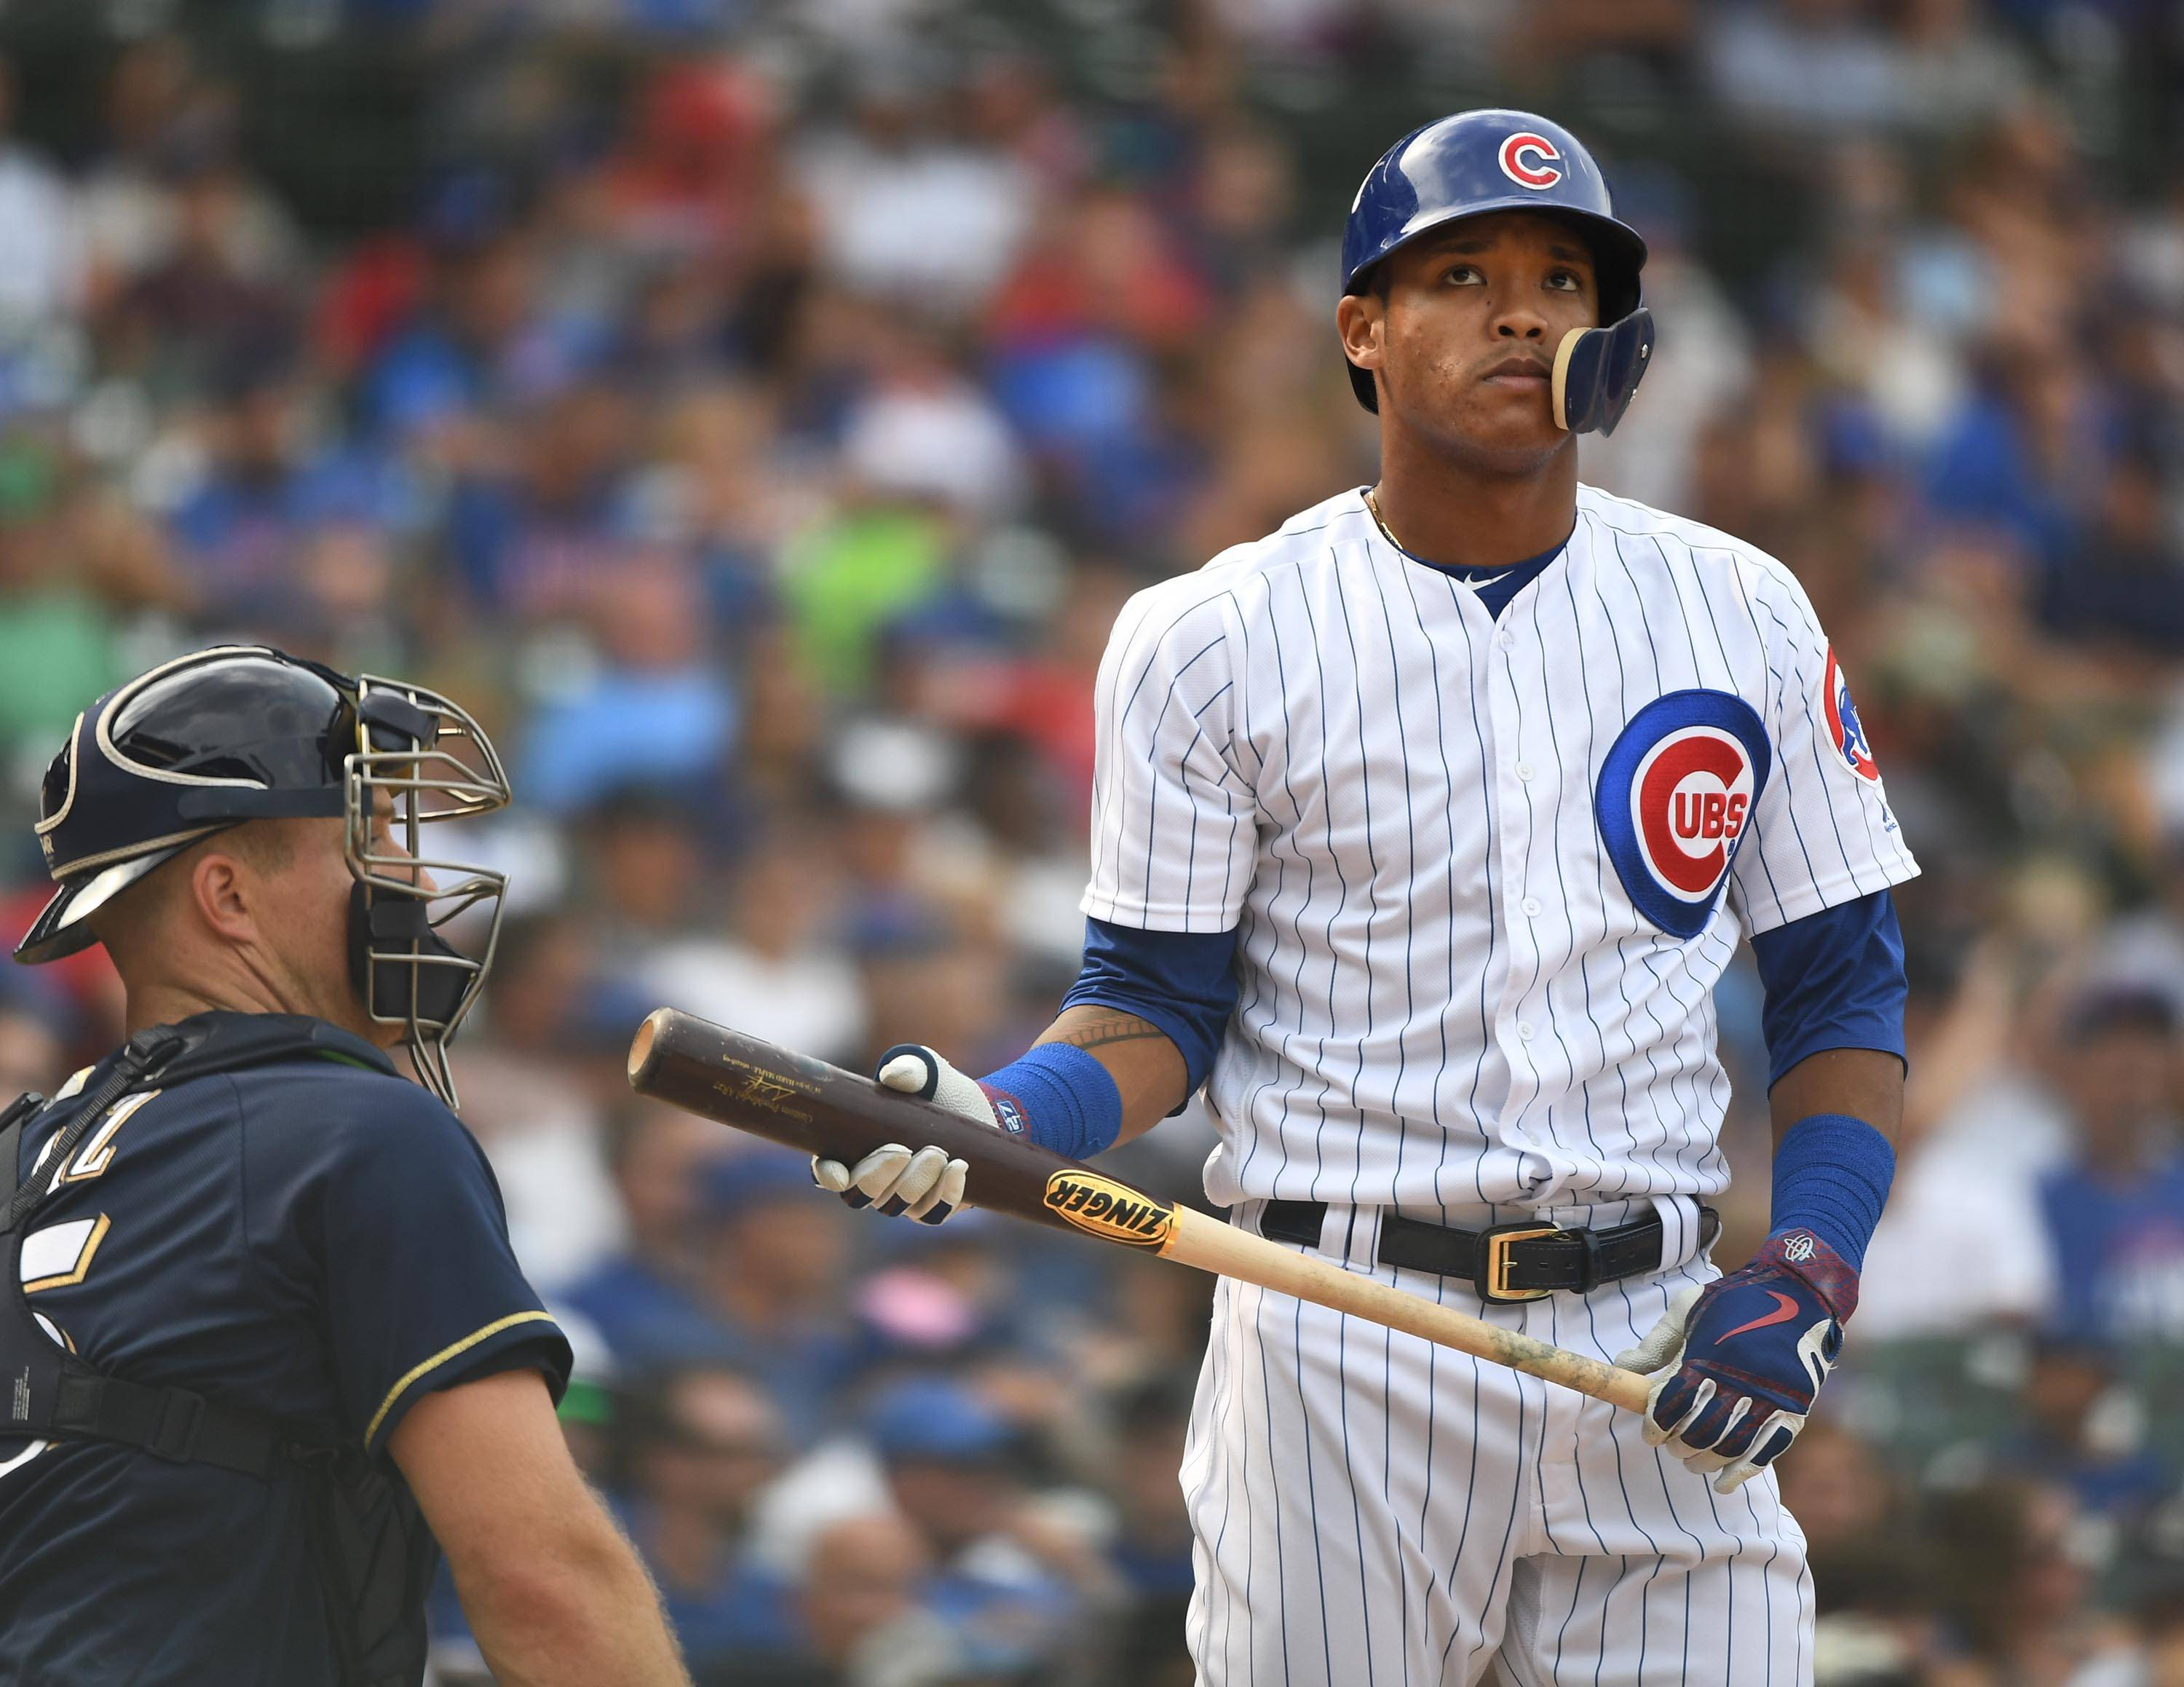 Major League Baseball has placed Cubs shortstop Addison Russell on administrative leave, the team said Friday. His ex-wife has accused him of emotional, verbal and physical abuse.